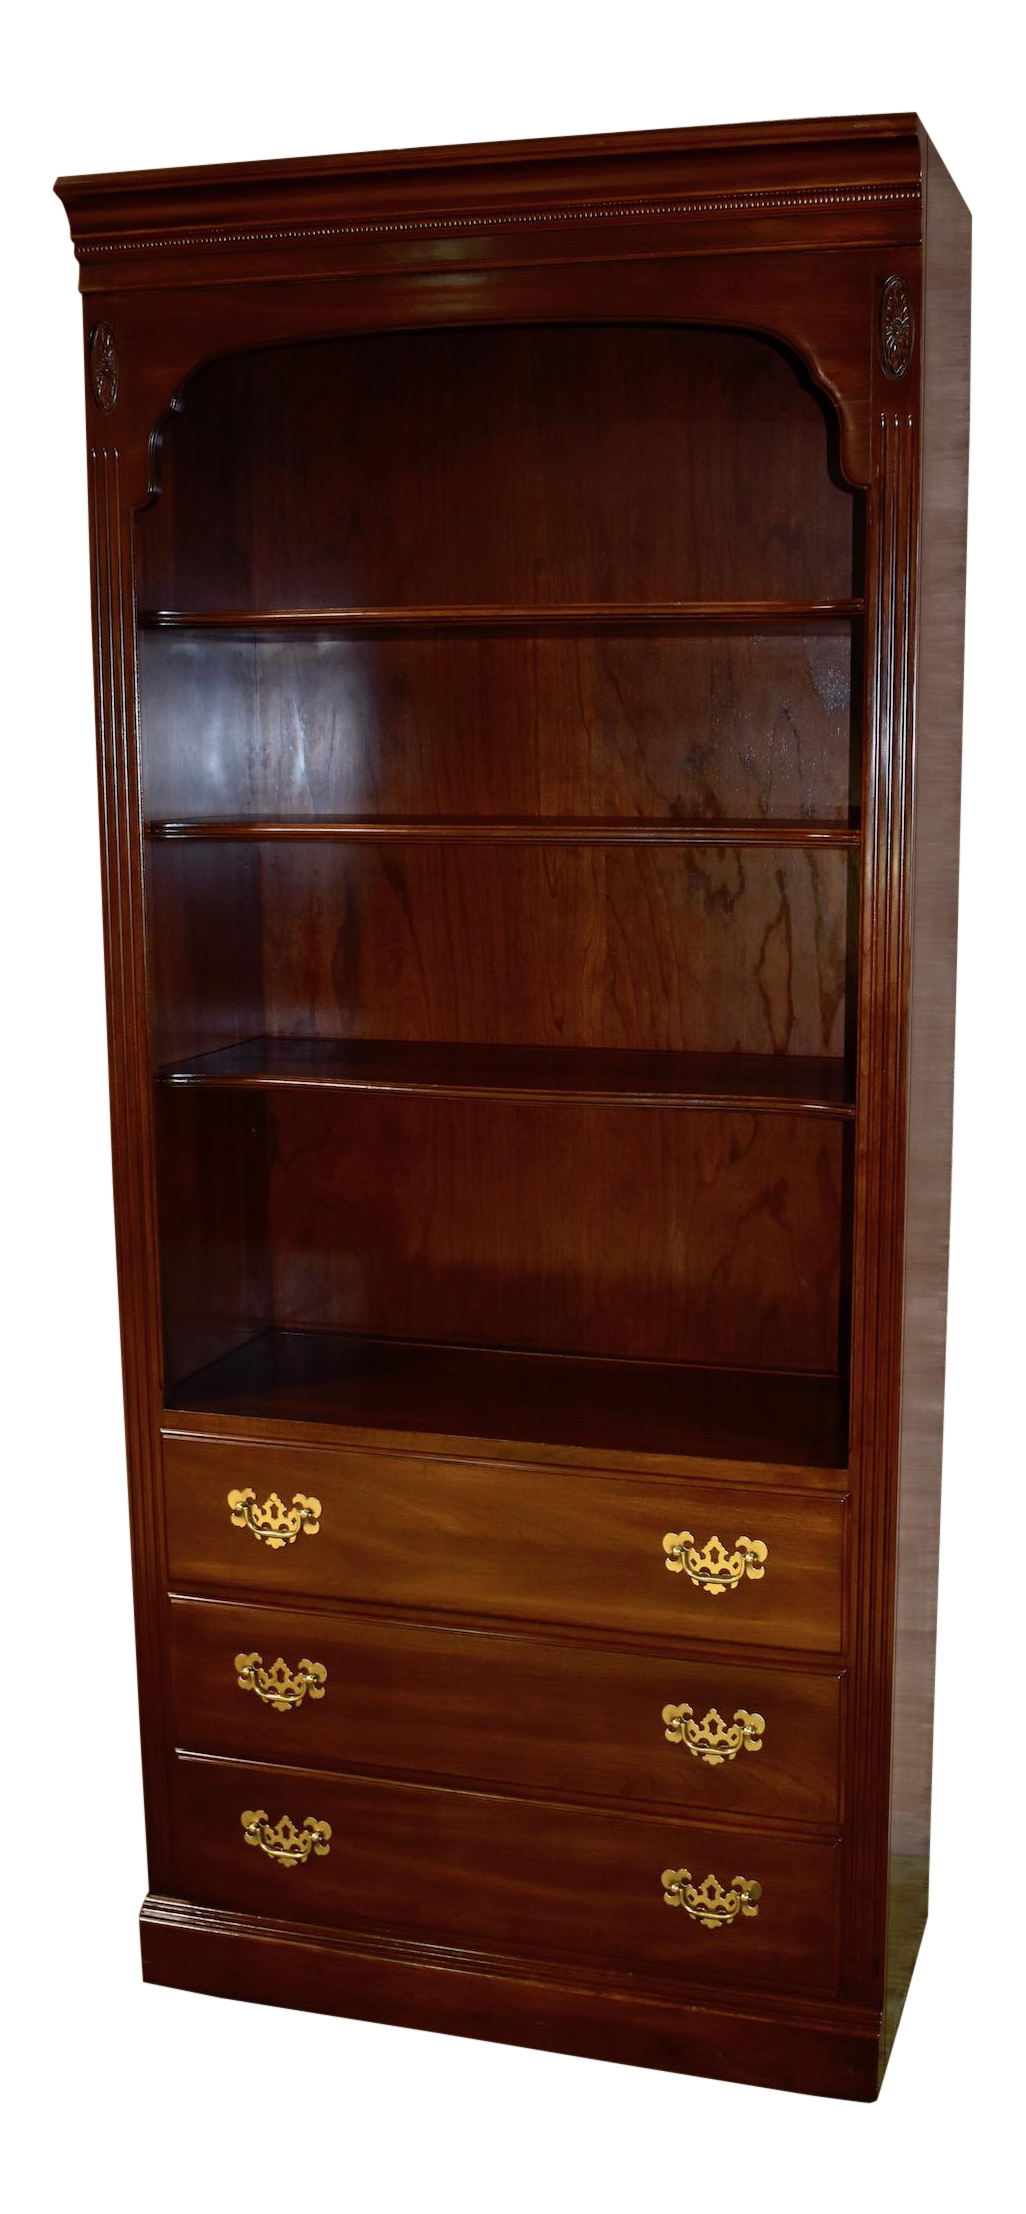 Merveilleux 1980s Traditional Ethan Allen Solid Cherry Bookcase With Cabinet Base    Chairish